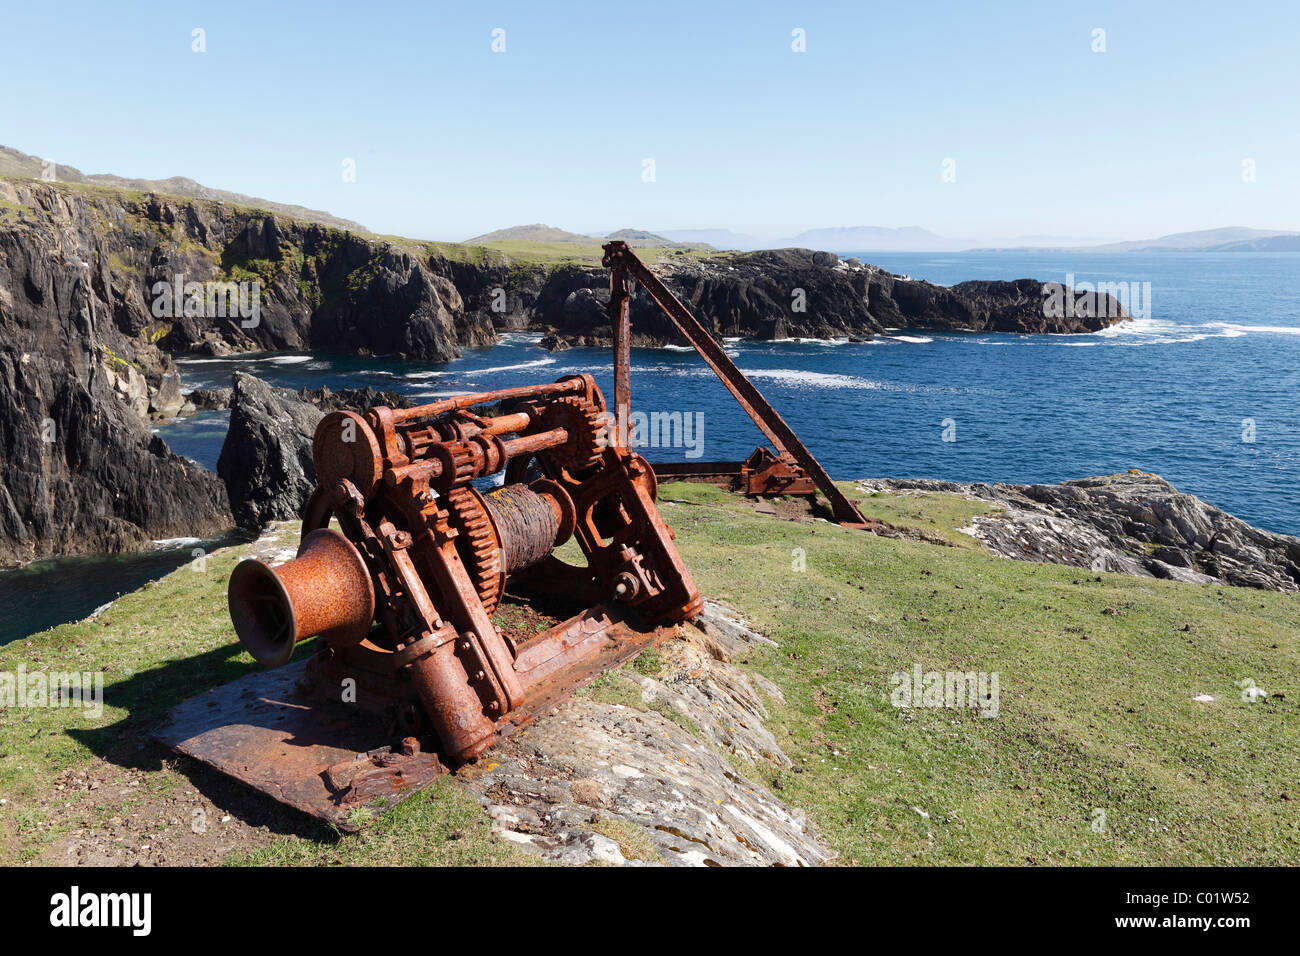 Cable winch, rocky coast in the south of Achill Island, County Mayo, Connacht province, Republic of Ireland, Europe - Stock Image